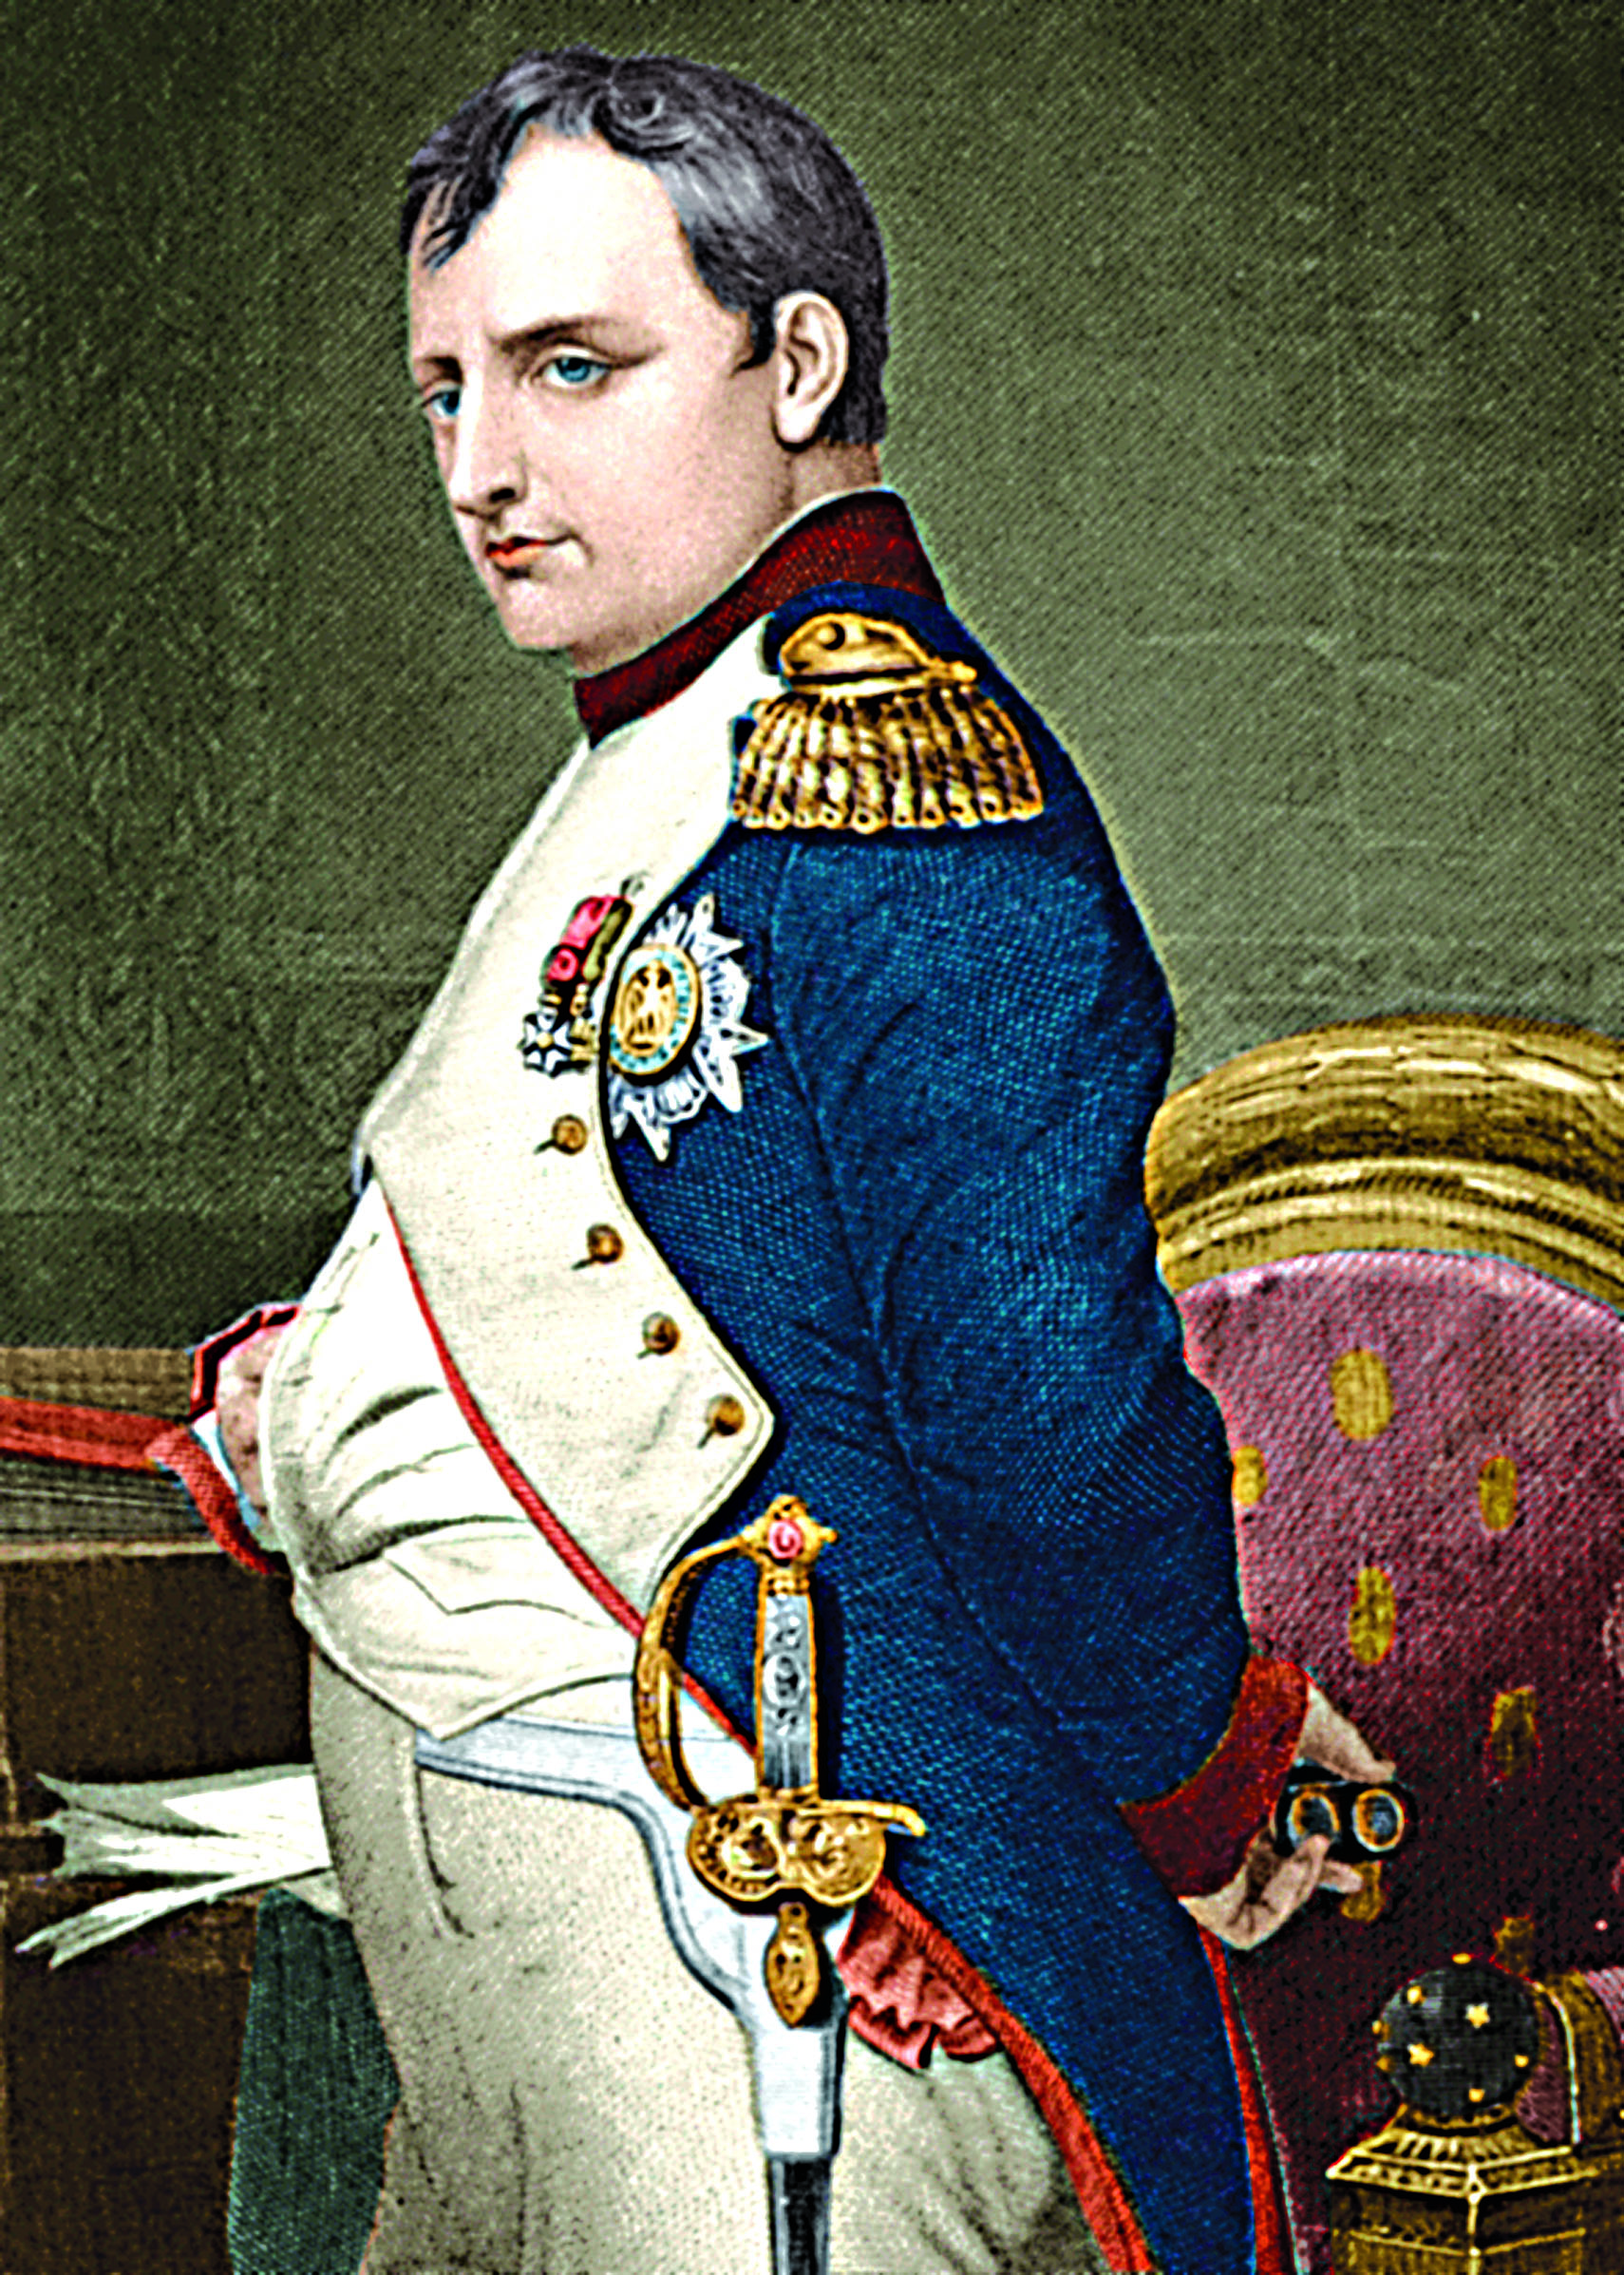 an analysis of the bonapartes success as a military leader in france Introduction it is generally agreed that the regime installed by napoleon was authoritarian but simply calling it a dictatorship seems excessivethe presence of opposing powers, the strength of the principles limiting the action of the executive and the circumstances themselves all restricted the leader's room for action.